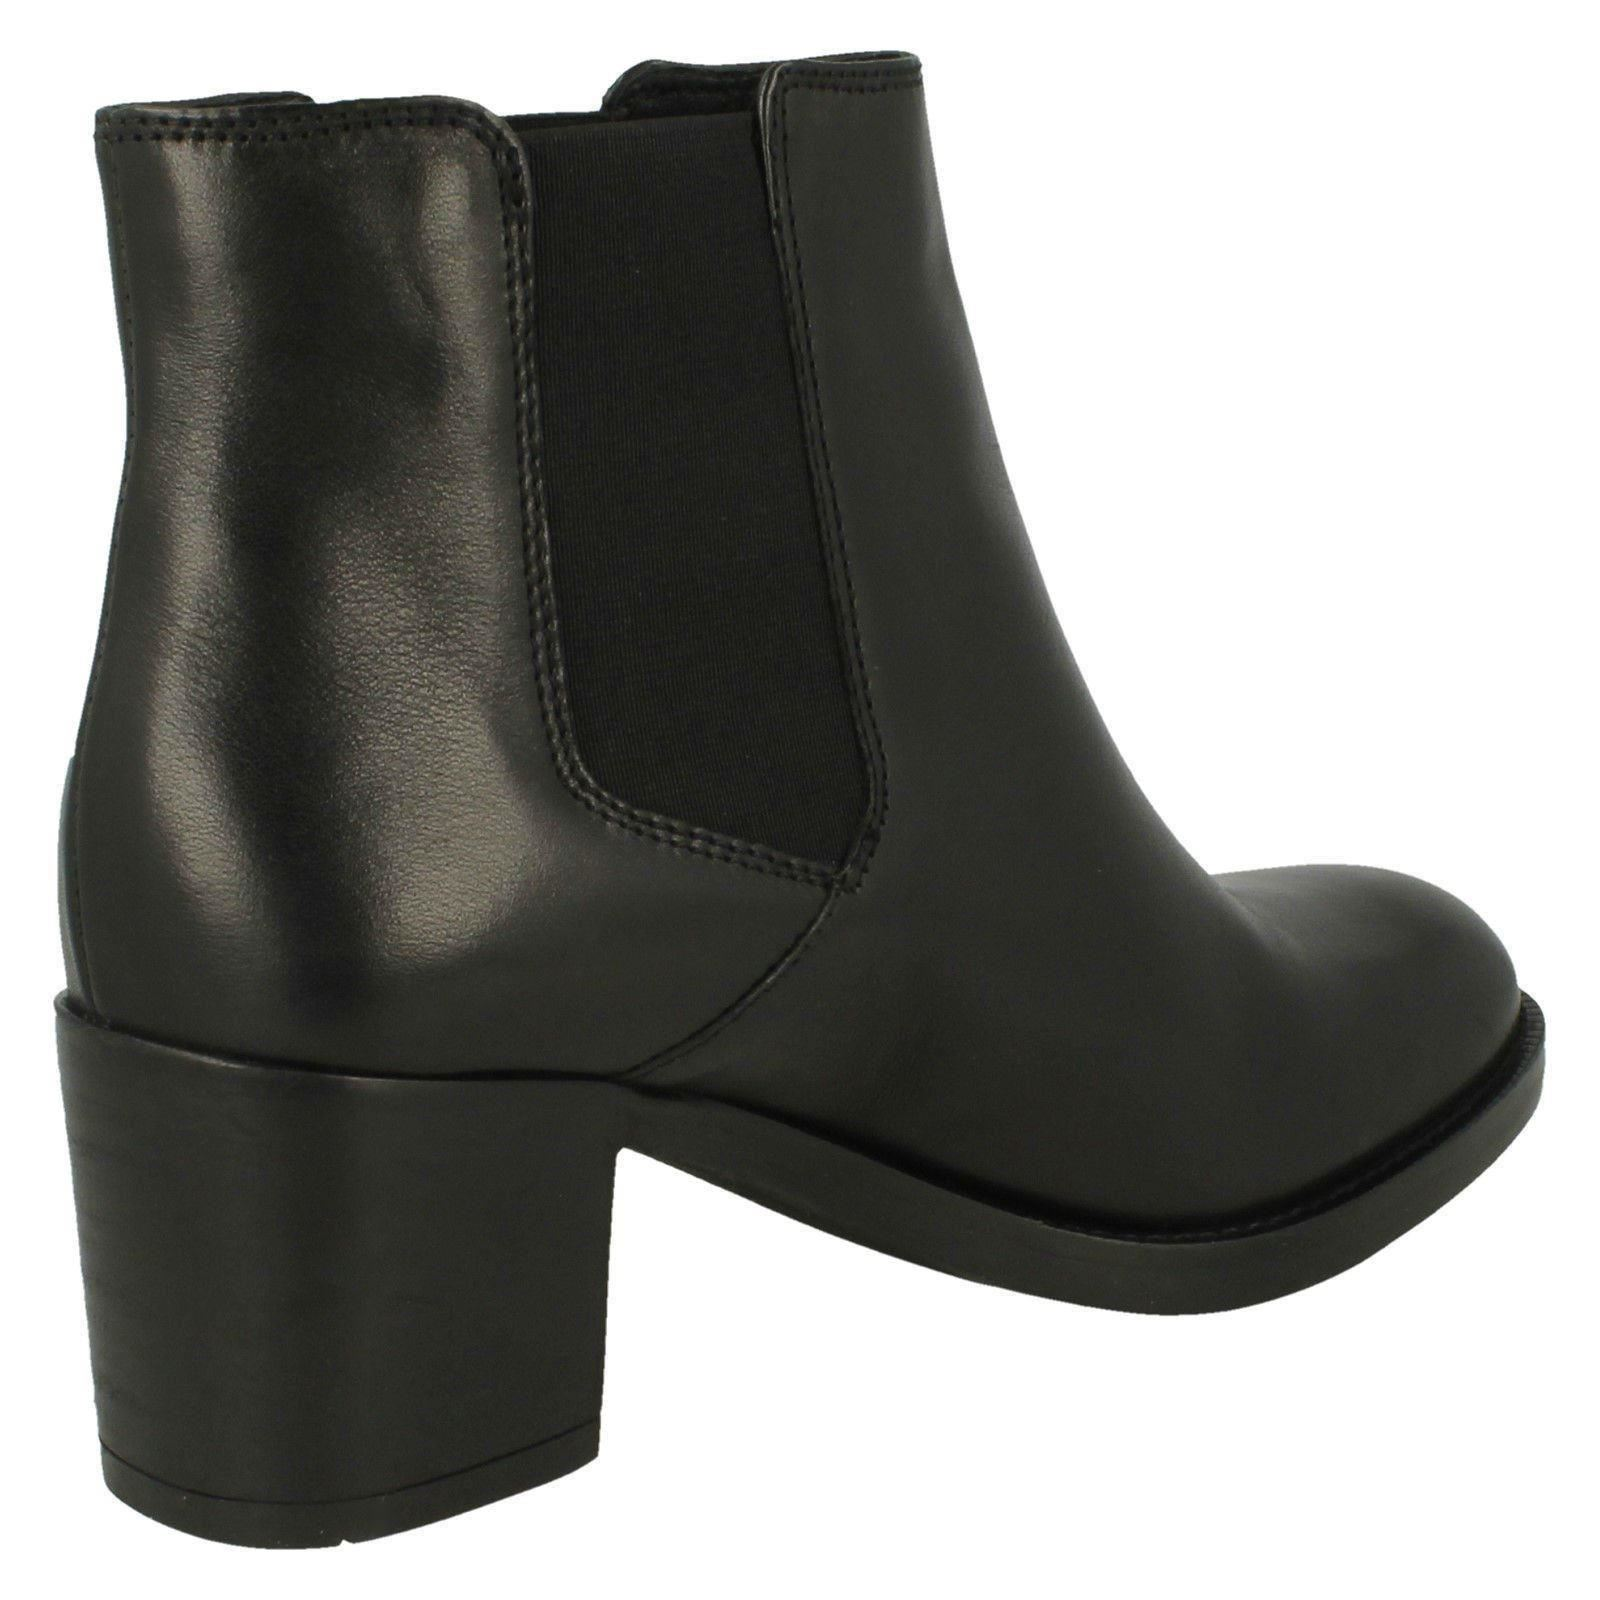 06033128b9edf4 ... Femmes Clarks élégant Bottines à enfiler mascarpone Bay | Réduction  Réduction Réduction ...